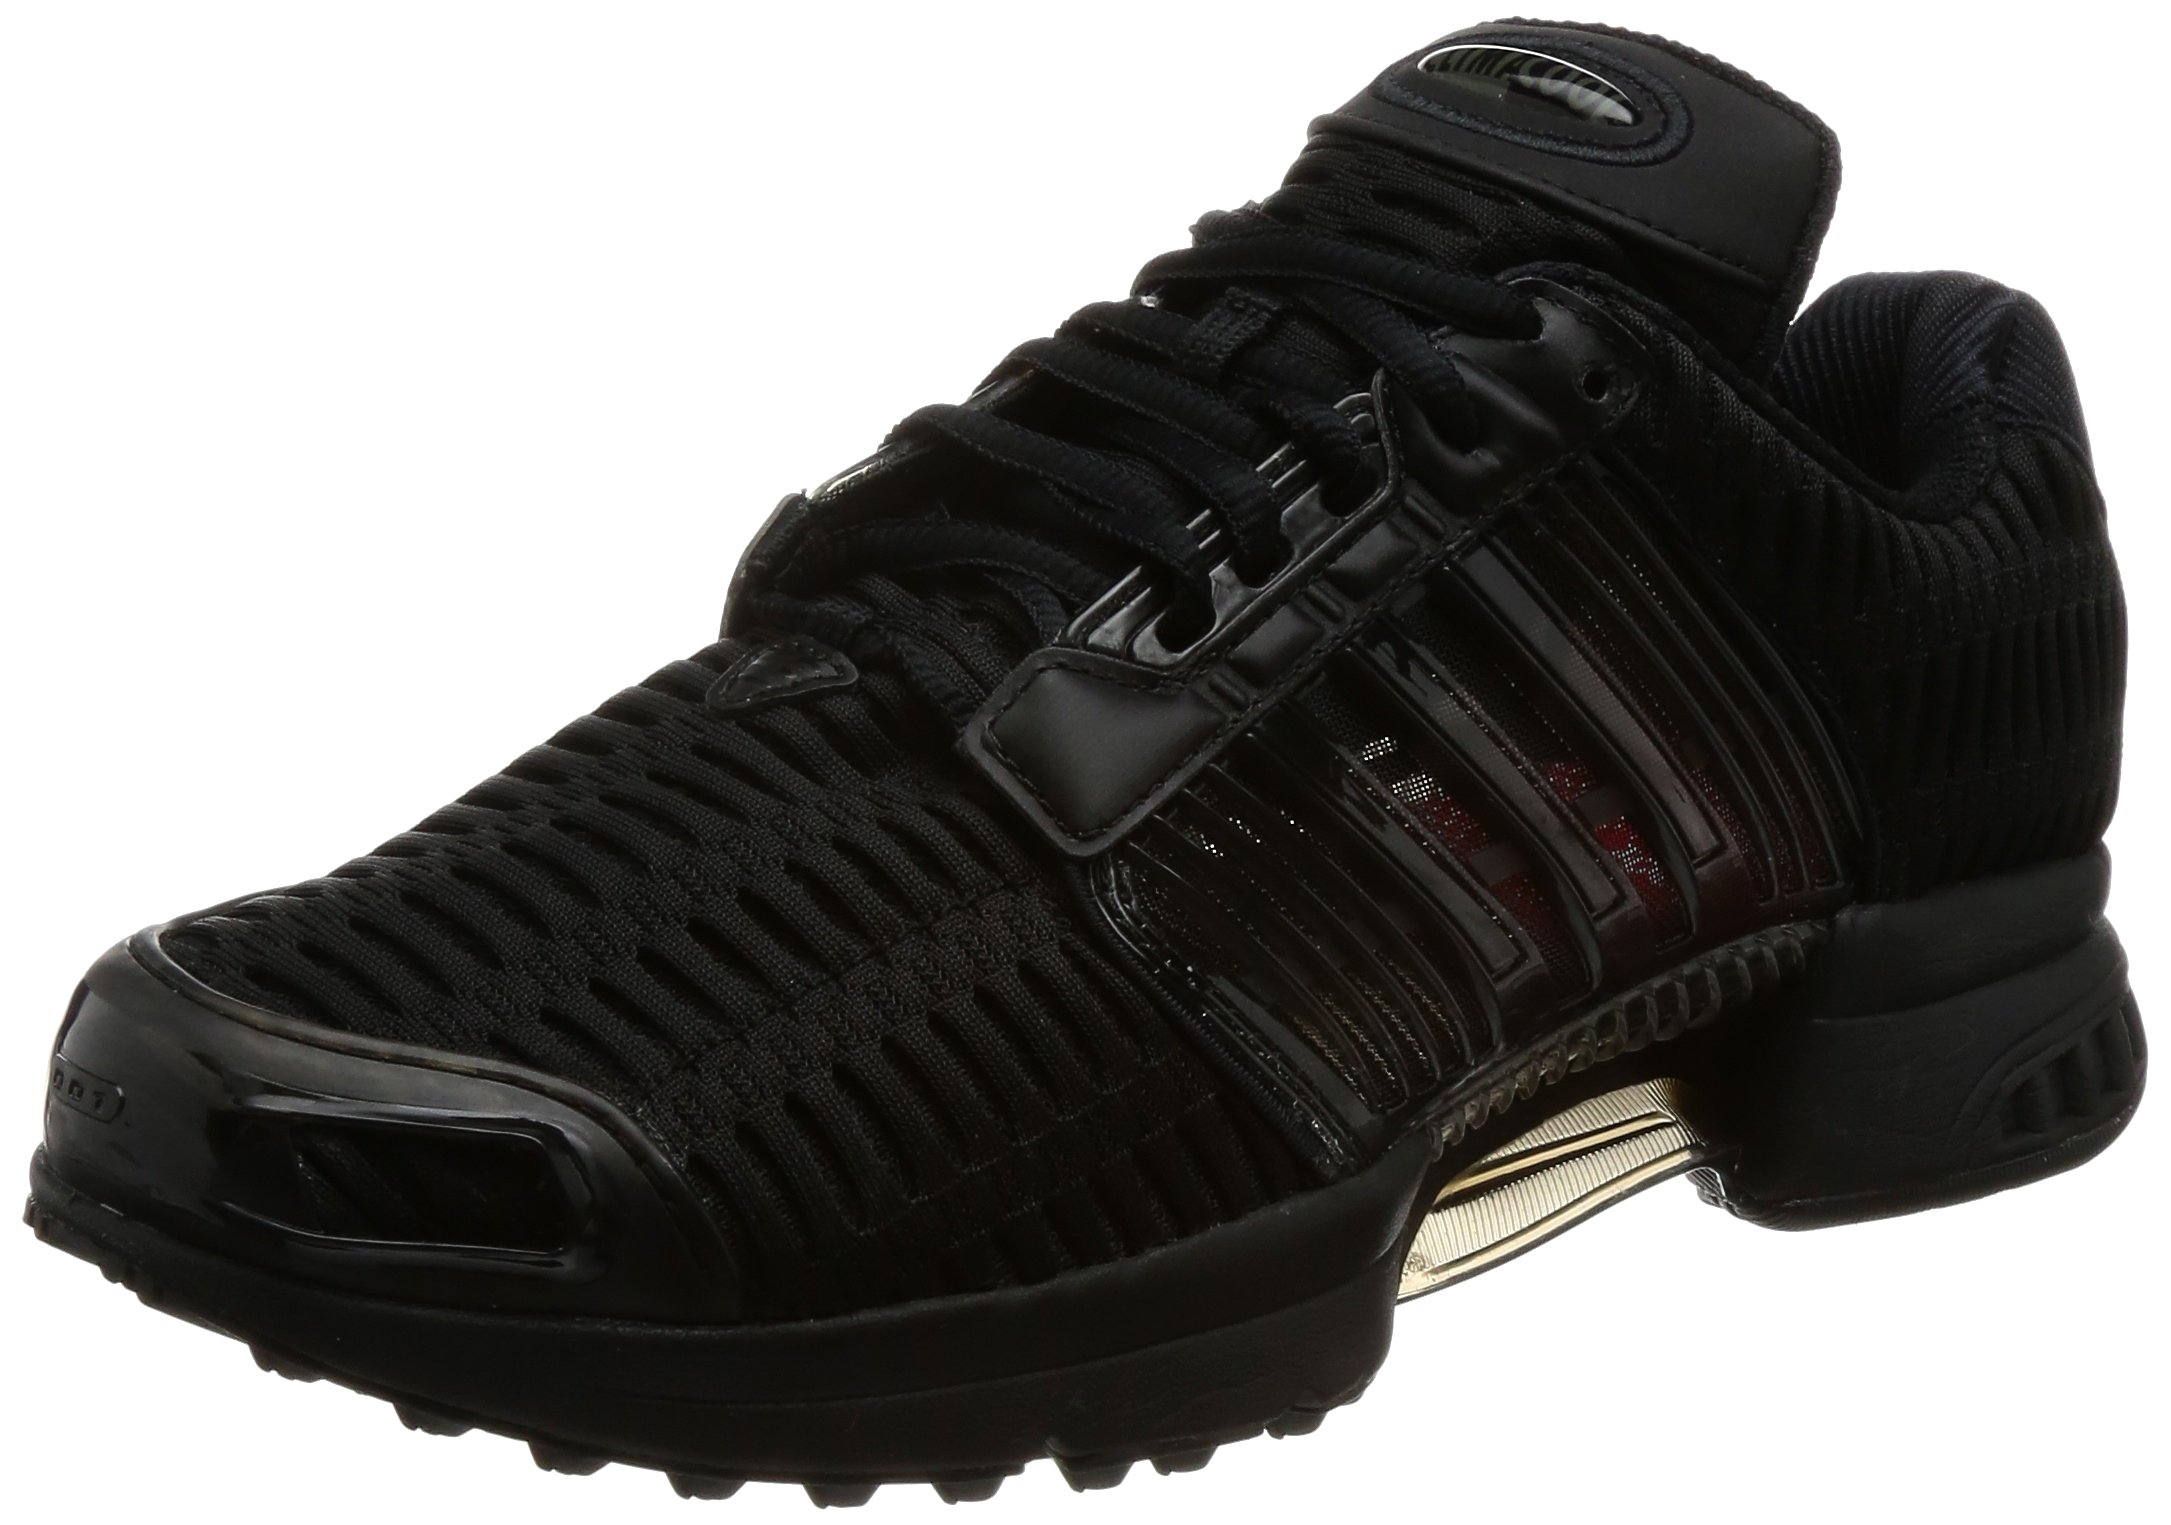 ebbda48eaf5 Galleon - Adidas Originals Clima Cool 1 Mens Running Trainers Sneakers (US  12.5